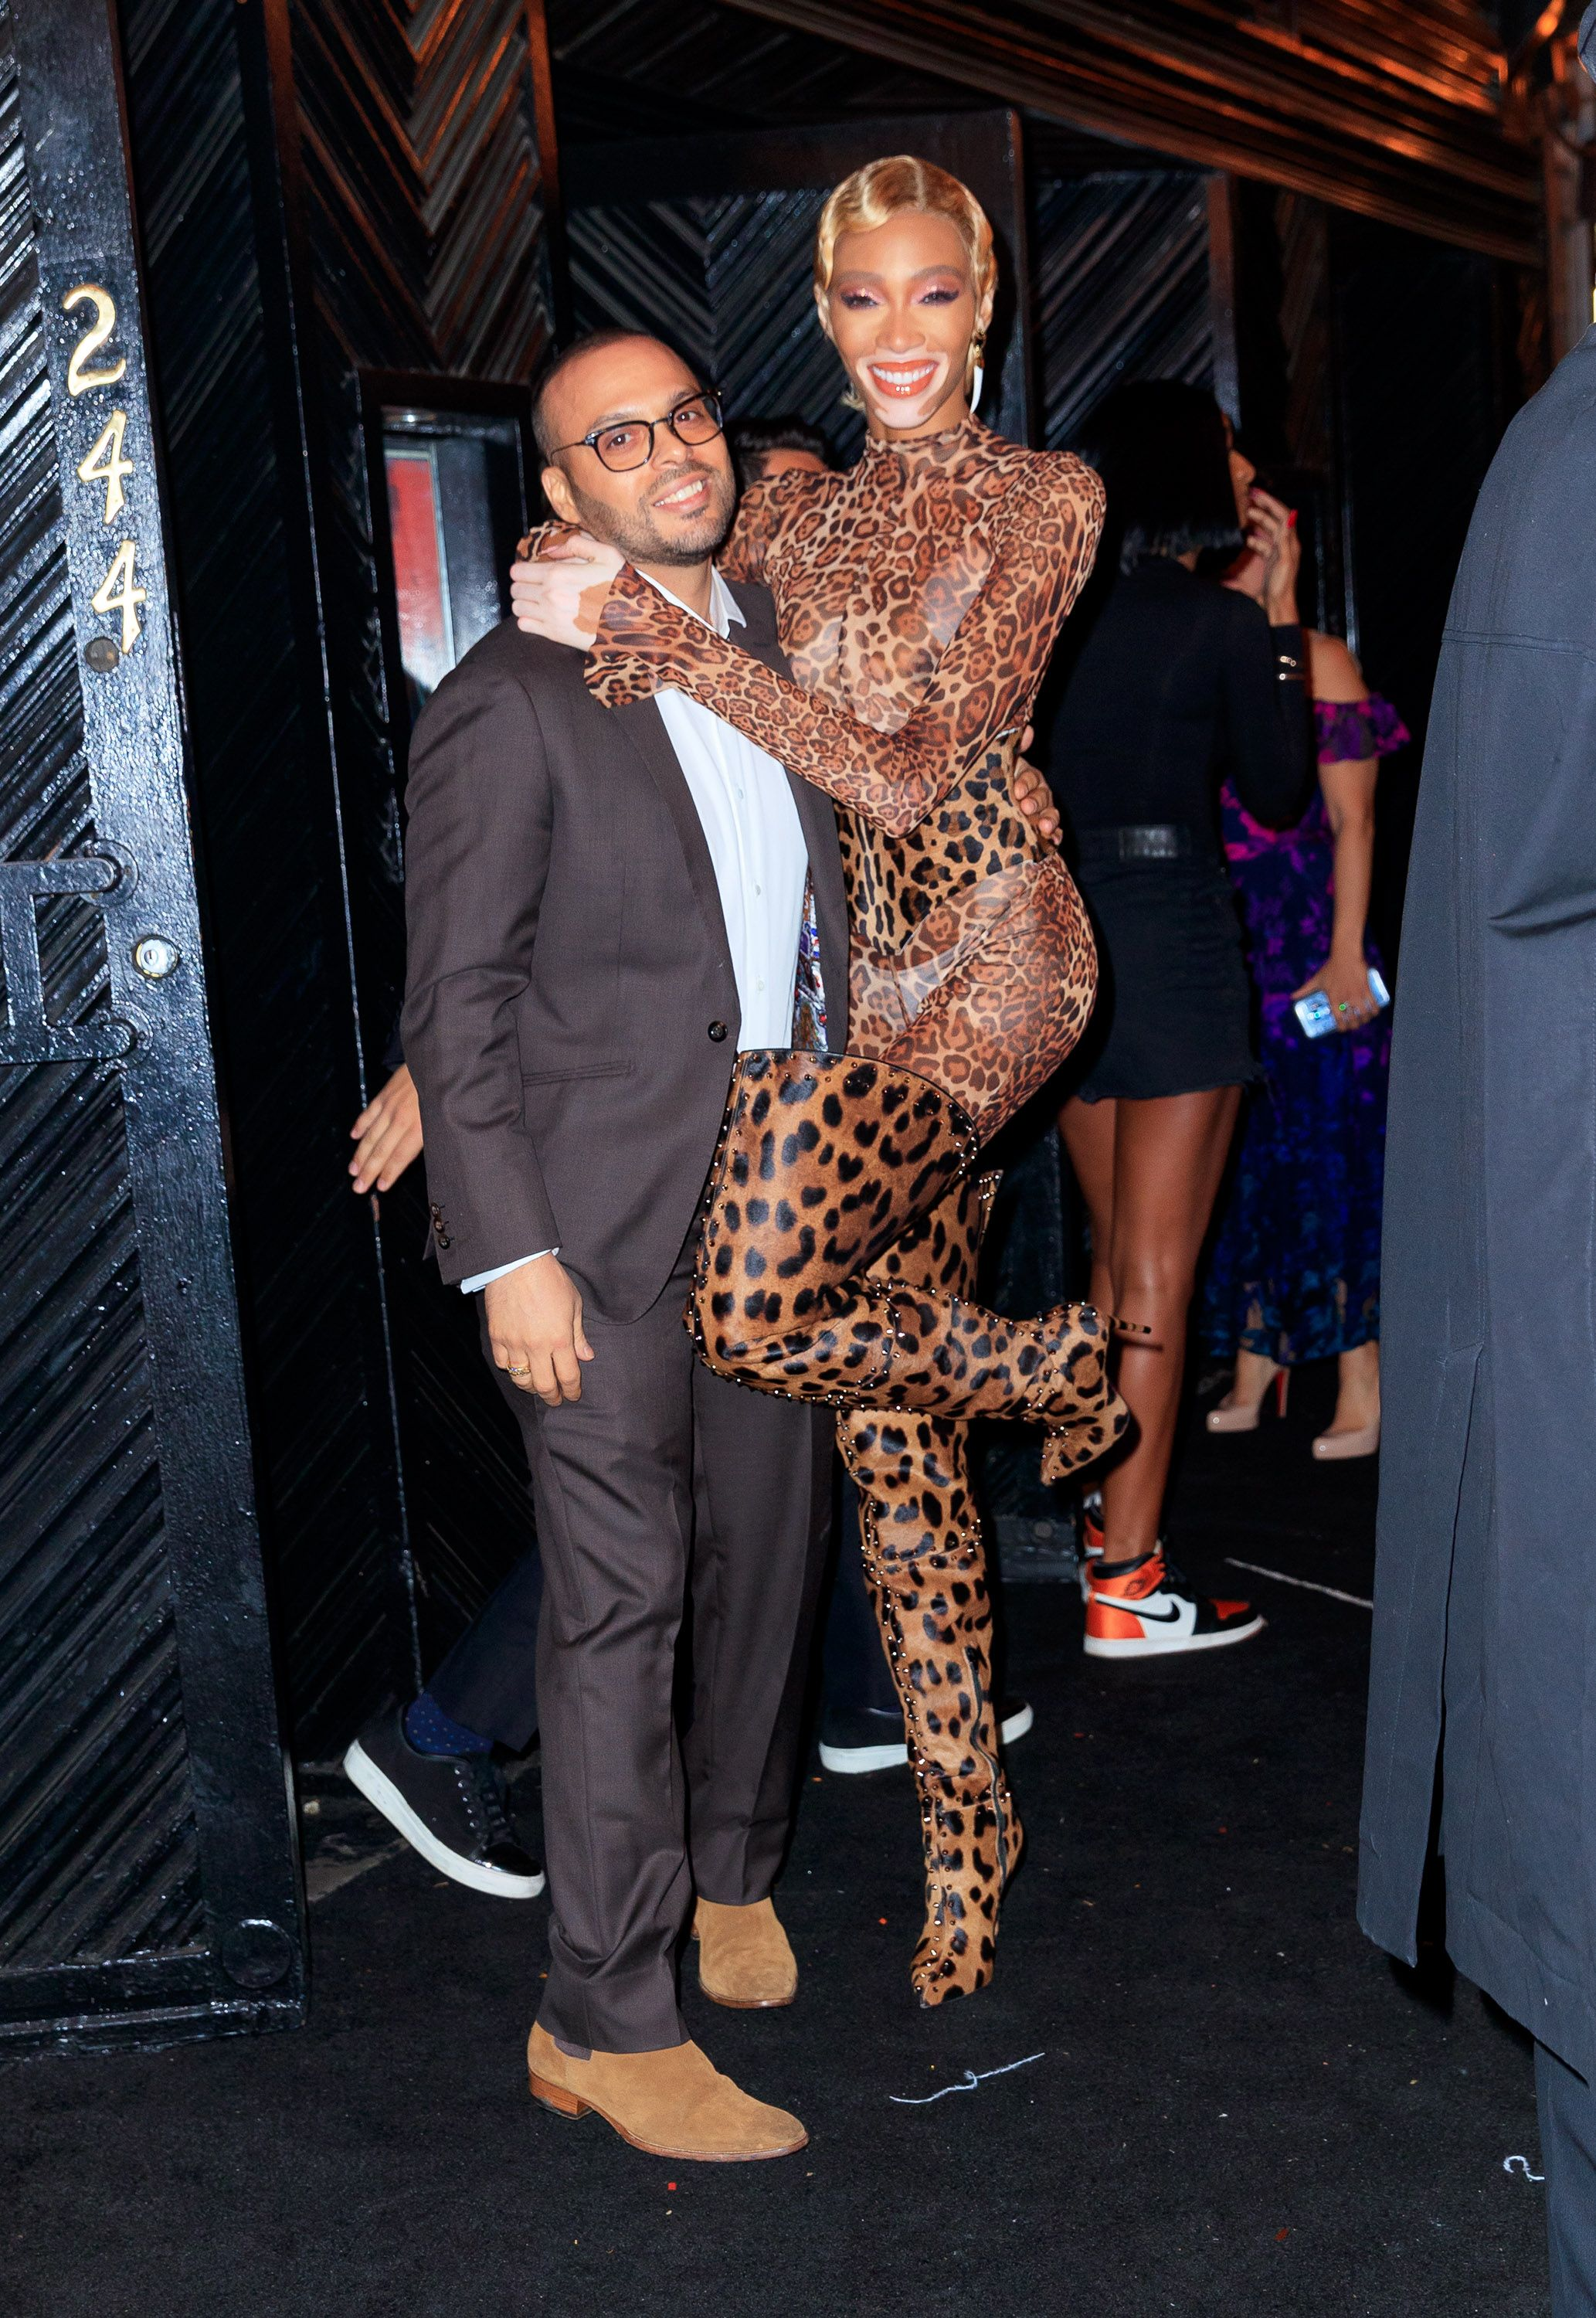 Richie Akiva and Winnie Harlow Winnie Harlow posed with NYC's Up and Down club owner in  a head-to-toe cheetah print catsuit and thigh high boots.